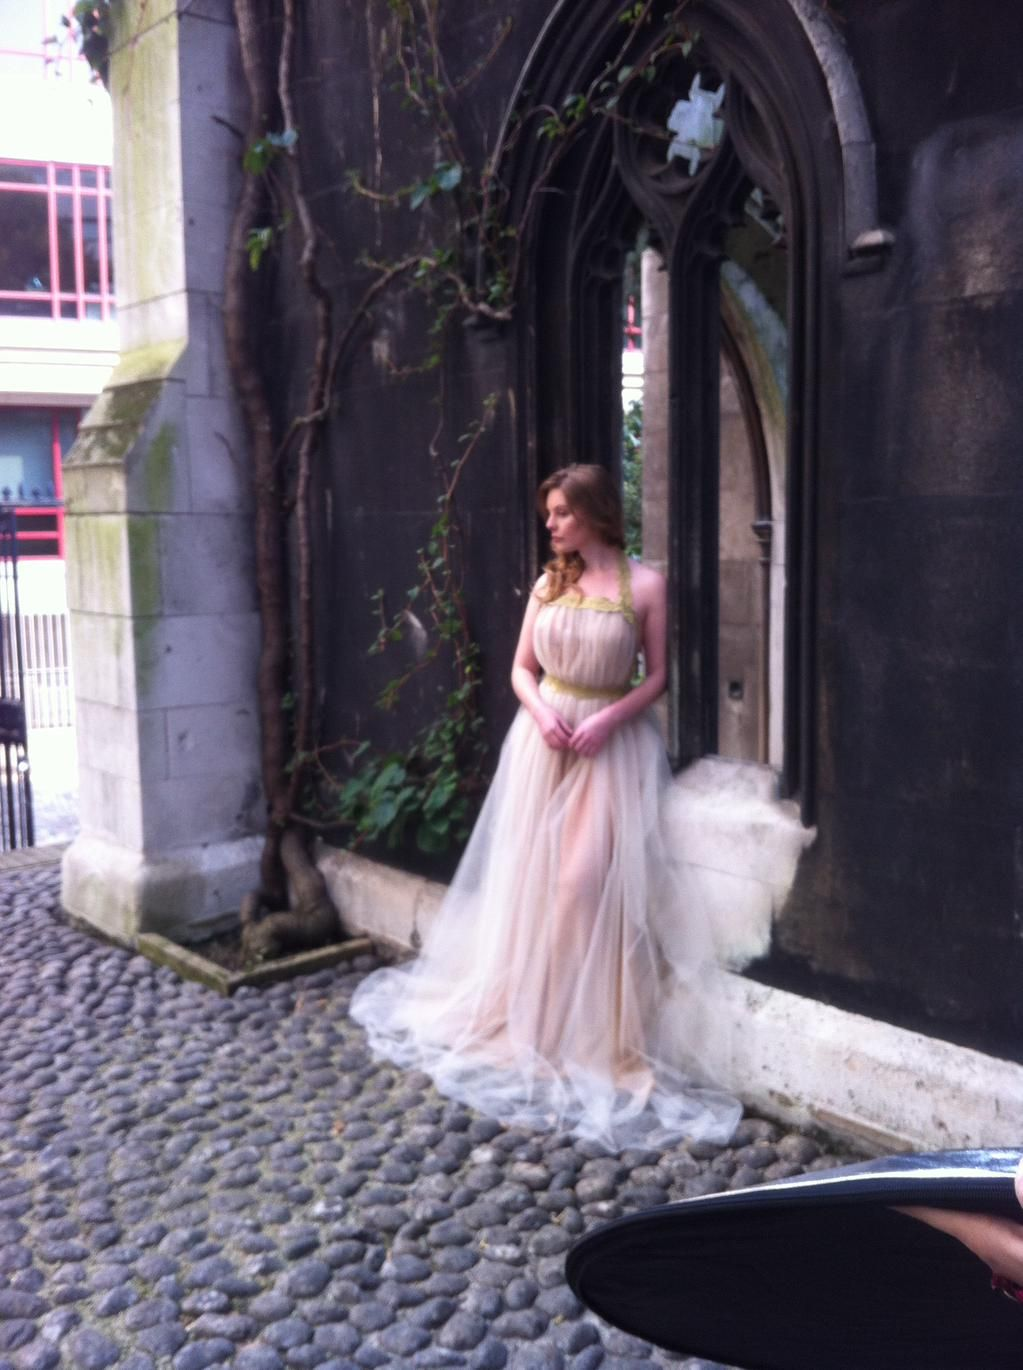 lovely photoshoot on saturday with the beautiful designs of @goshhy X X X pic.twitter.com/EubWYu4WV2